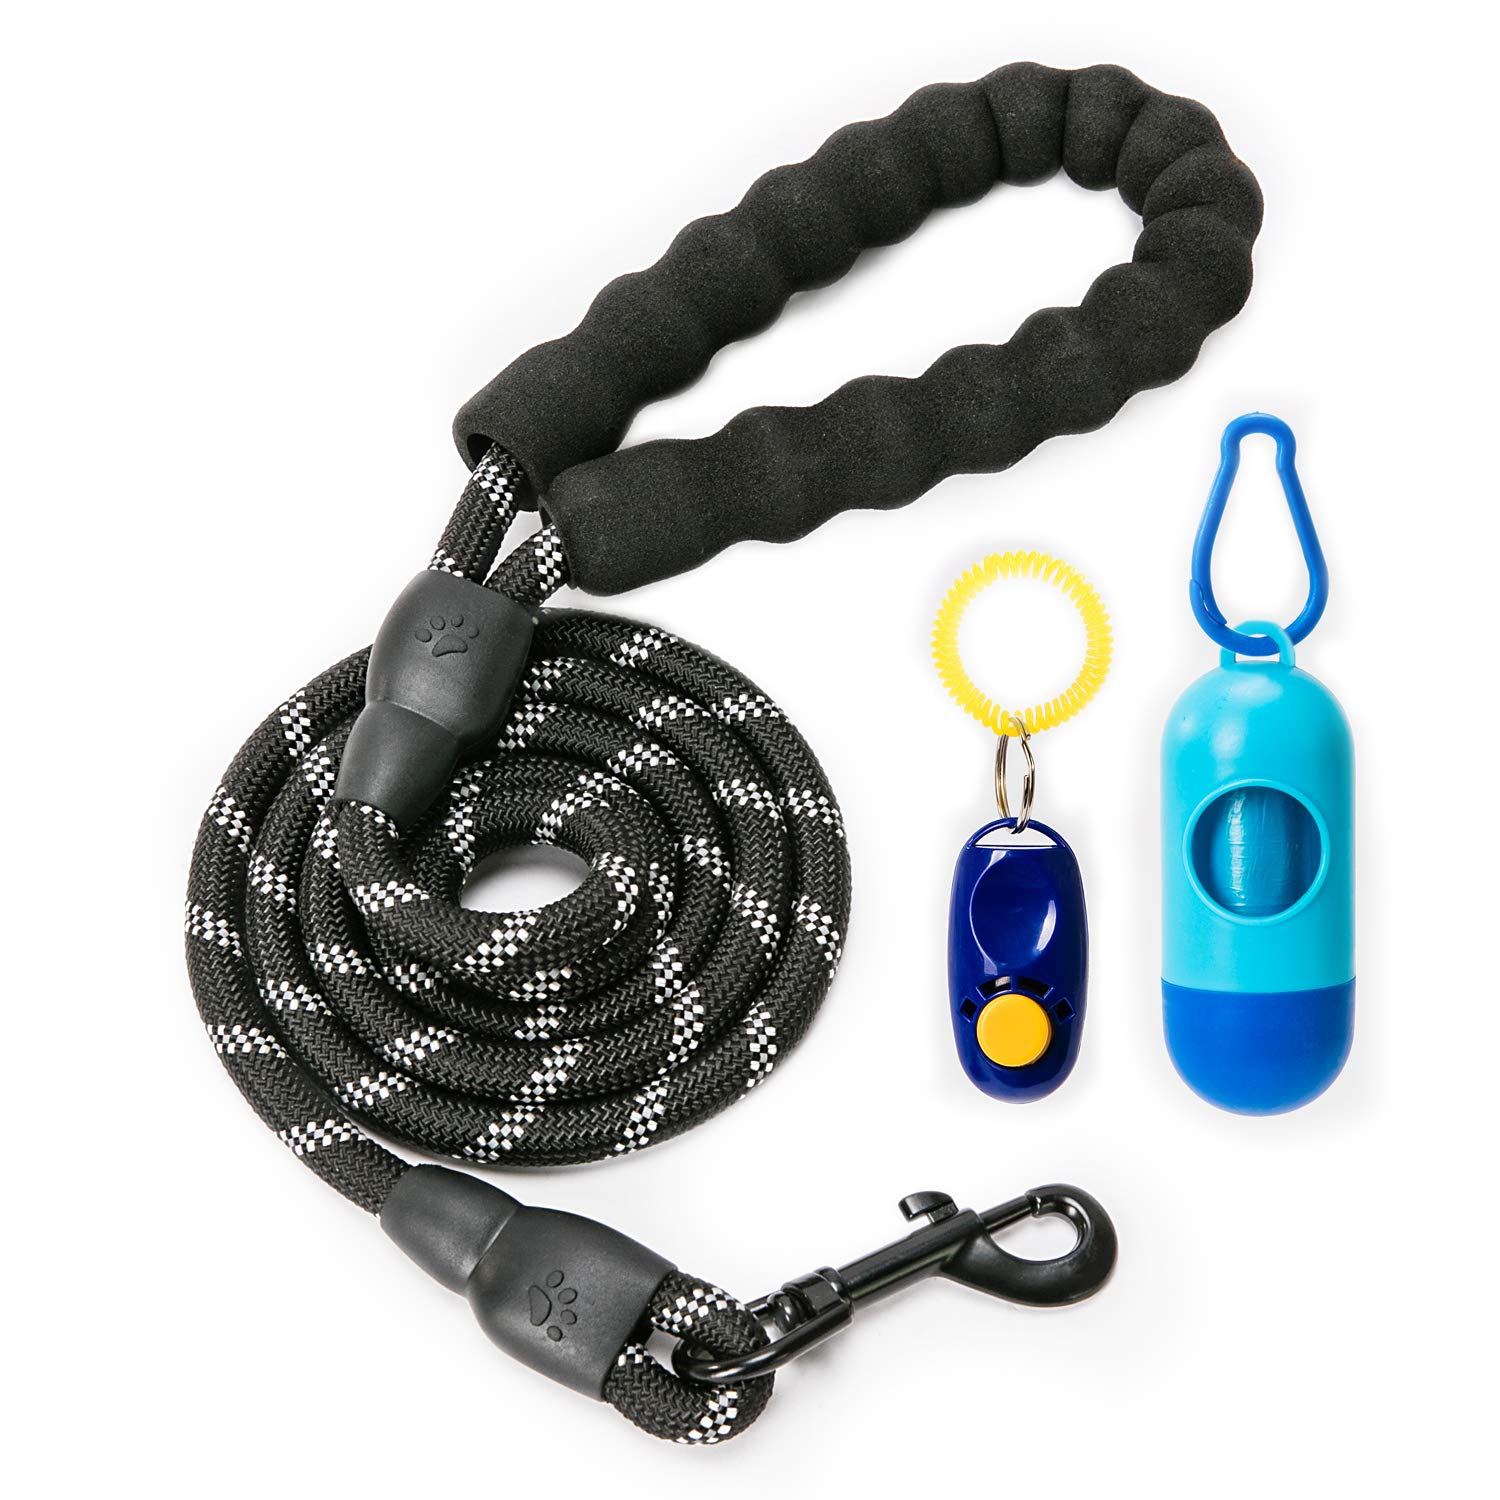 YiPet 5 ft Strong Dog Leash Comfortable Padded Handle Highly Reflective Threads for Medium Large Dogs£¬ Black